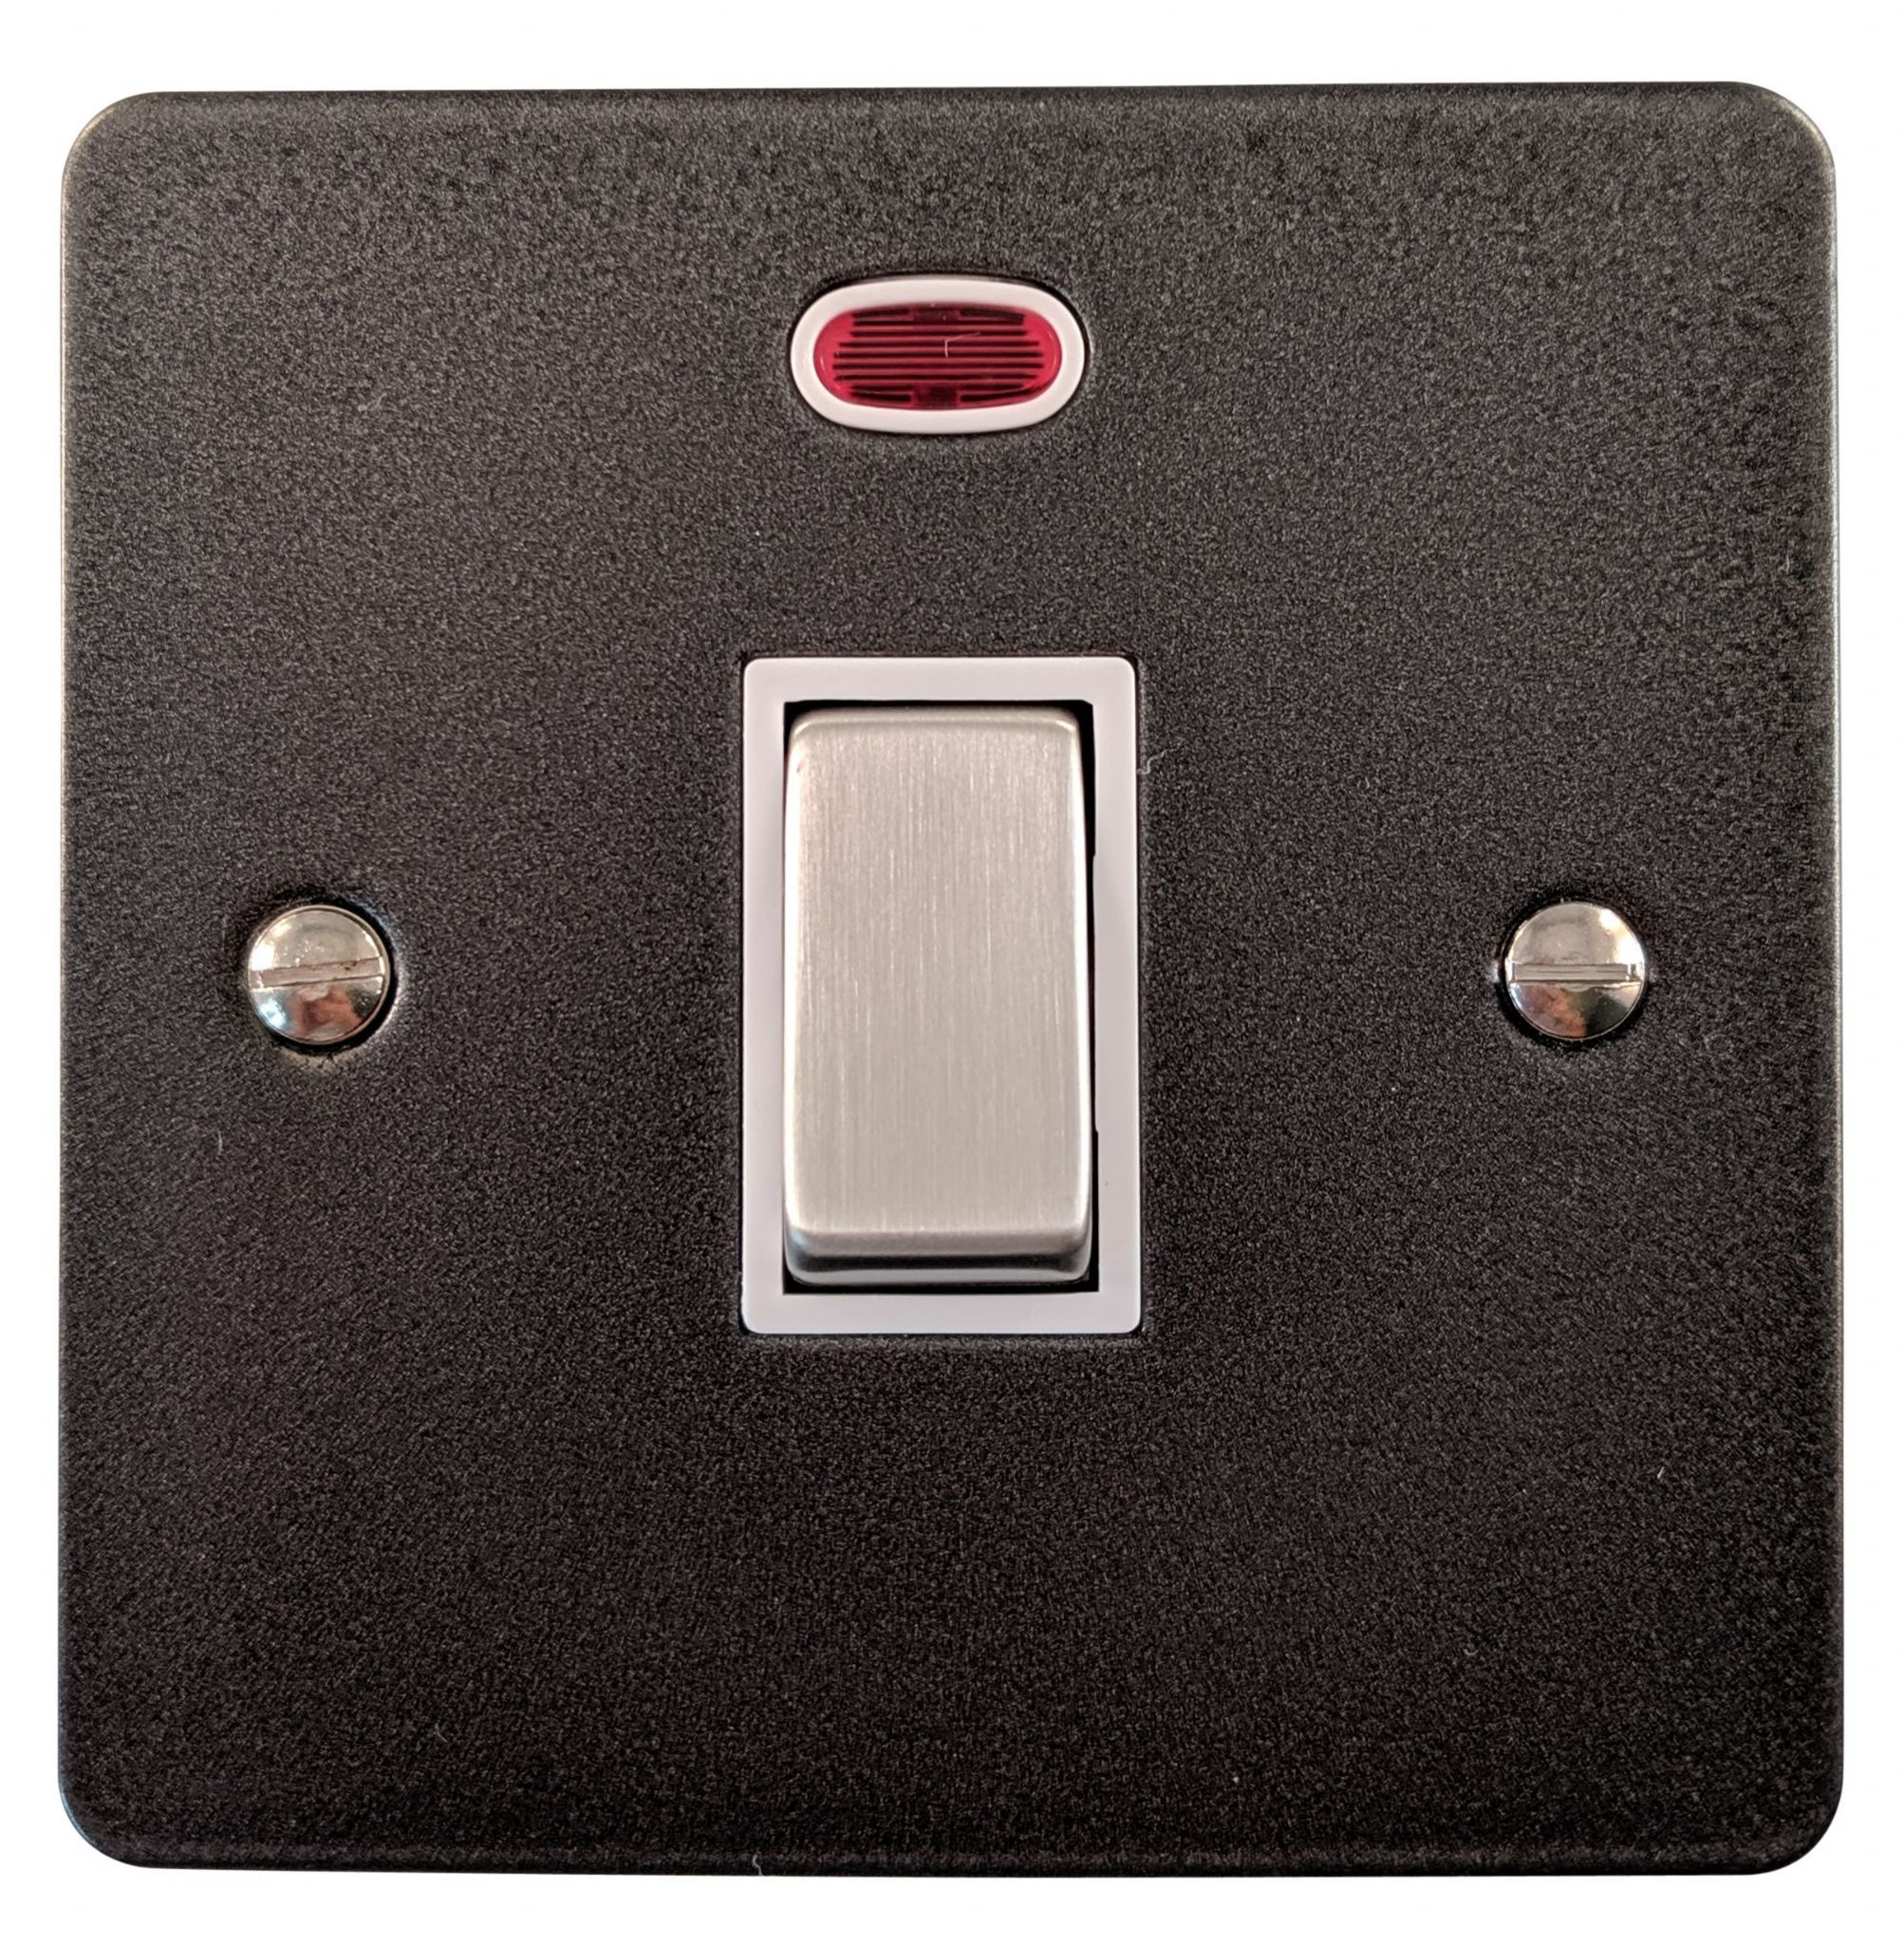 G&H FP226 Flat Plate Pewter 1 Gang 20 Amp Double Pole Switch & Neon